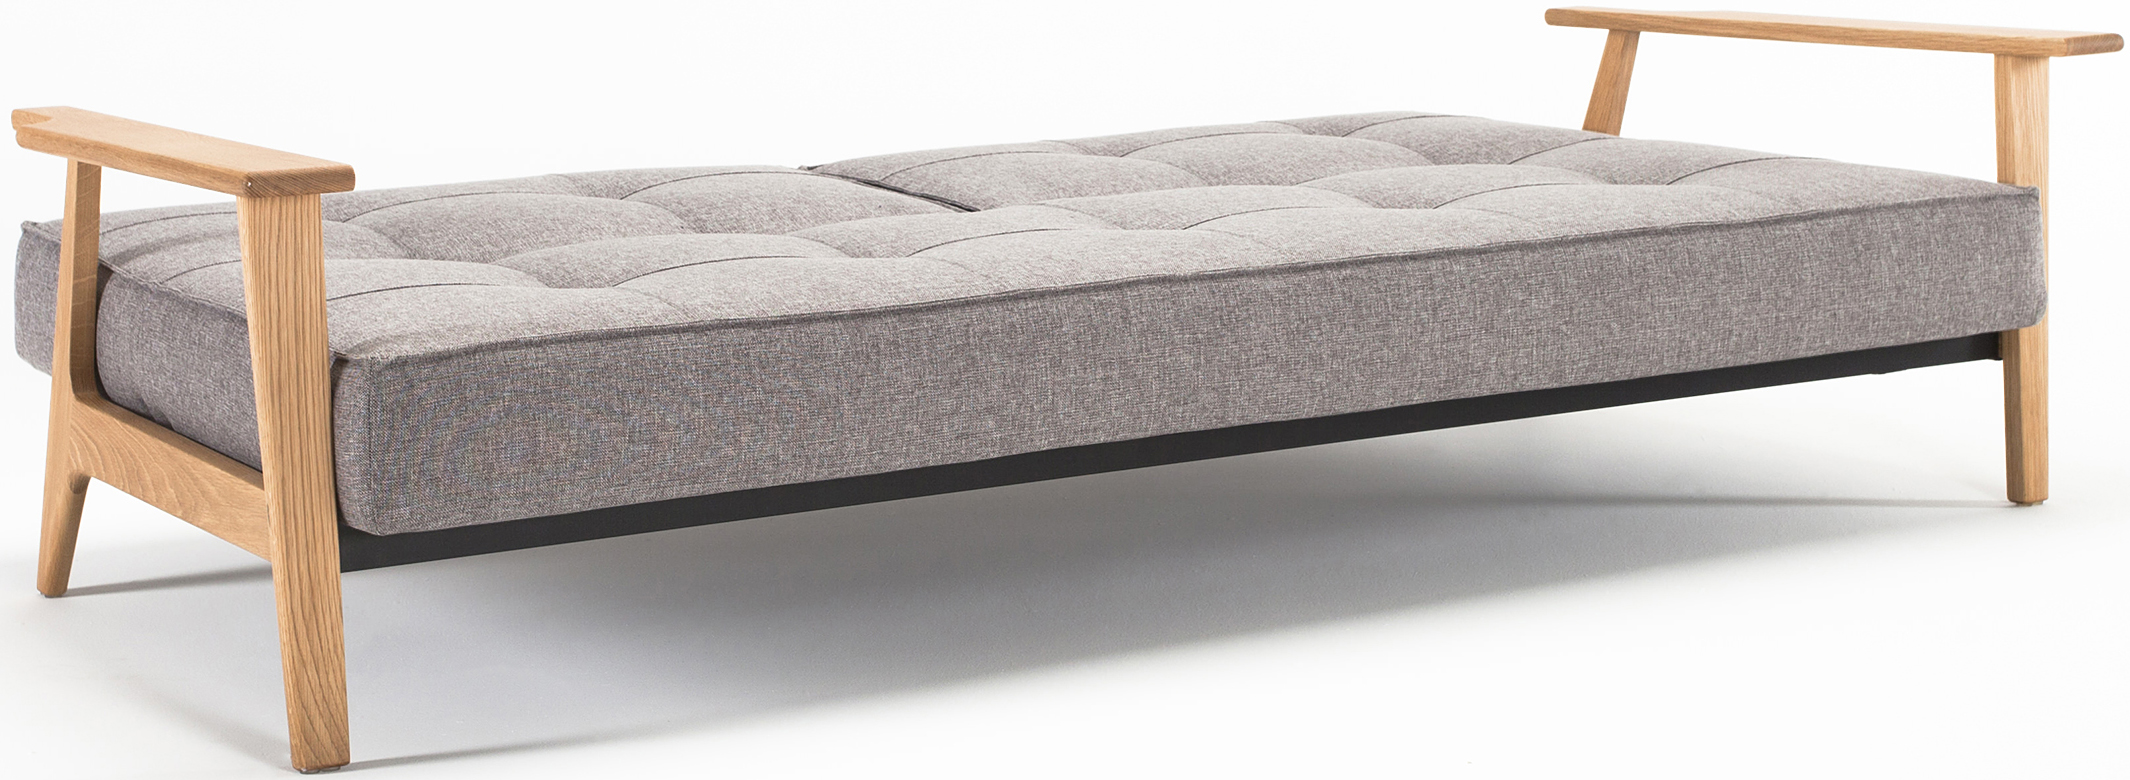 splitback frej sovesofa mixed dance grey